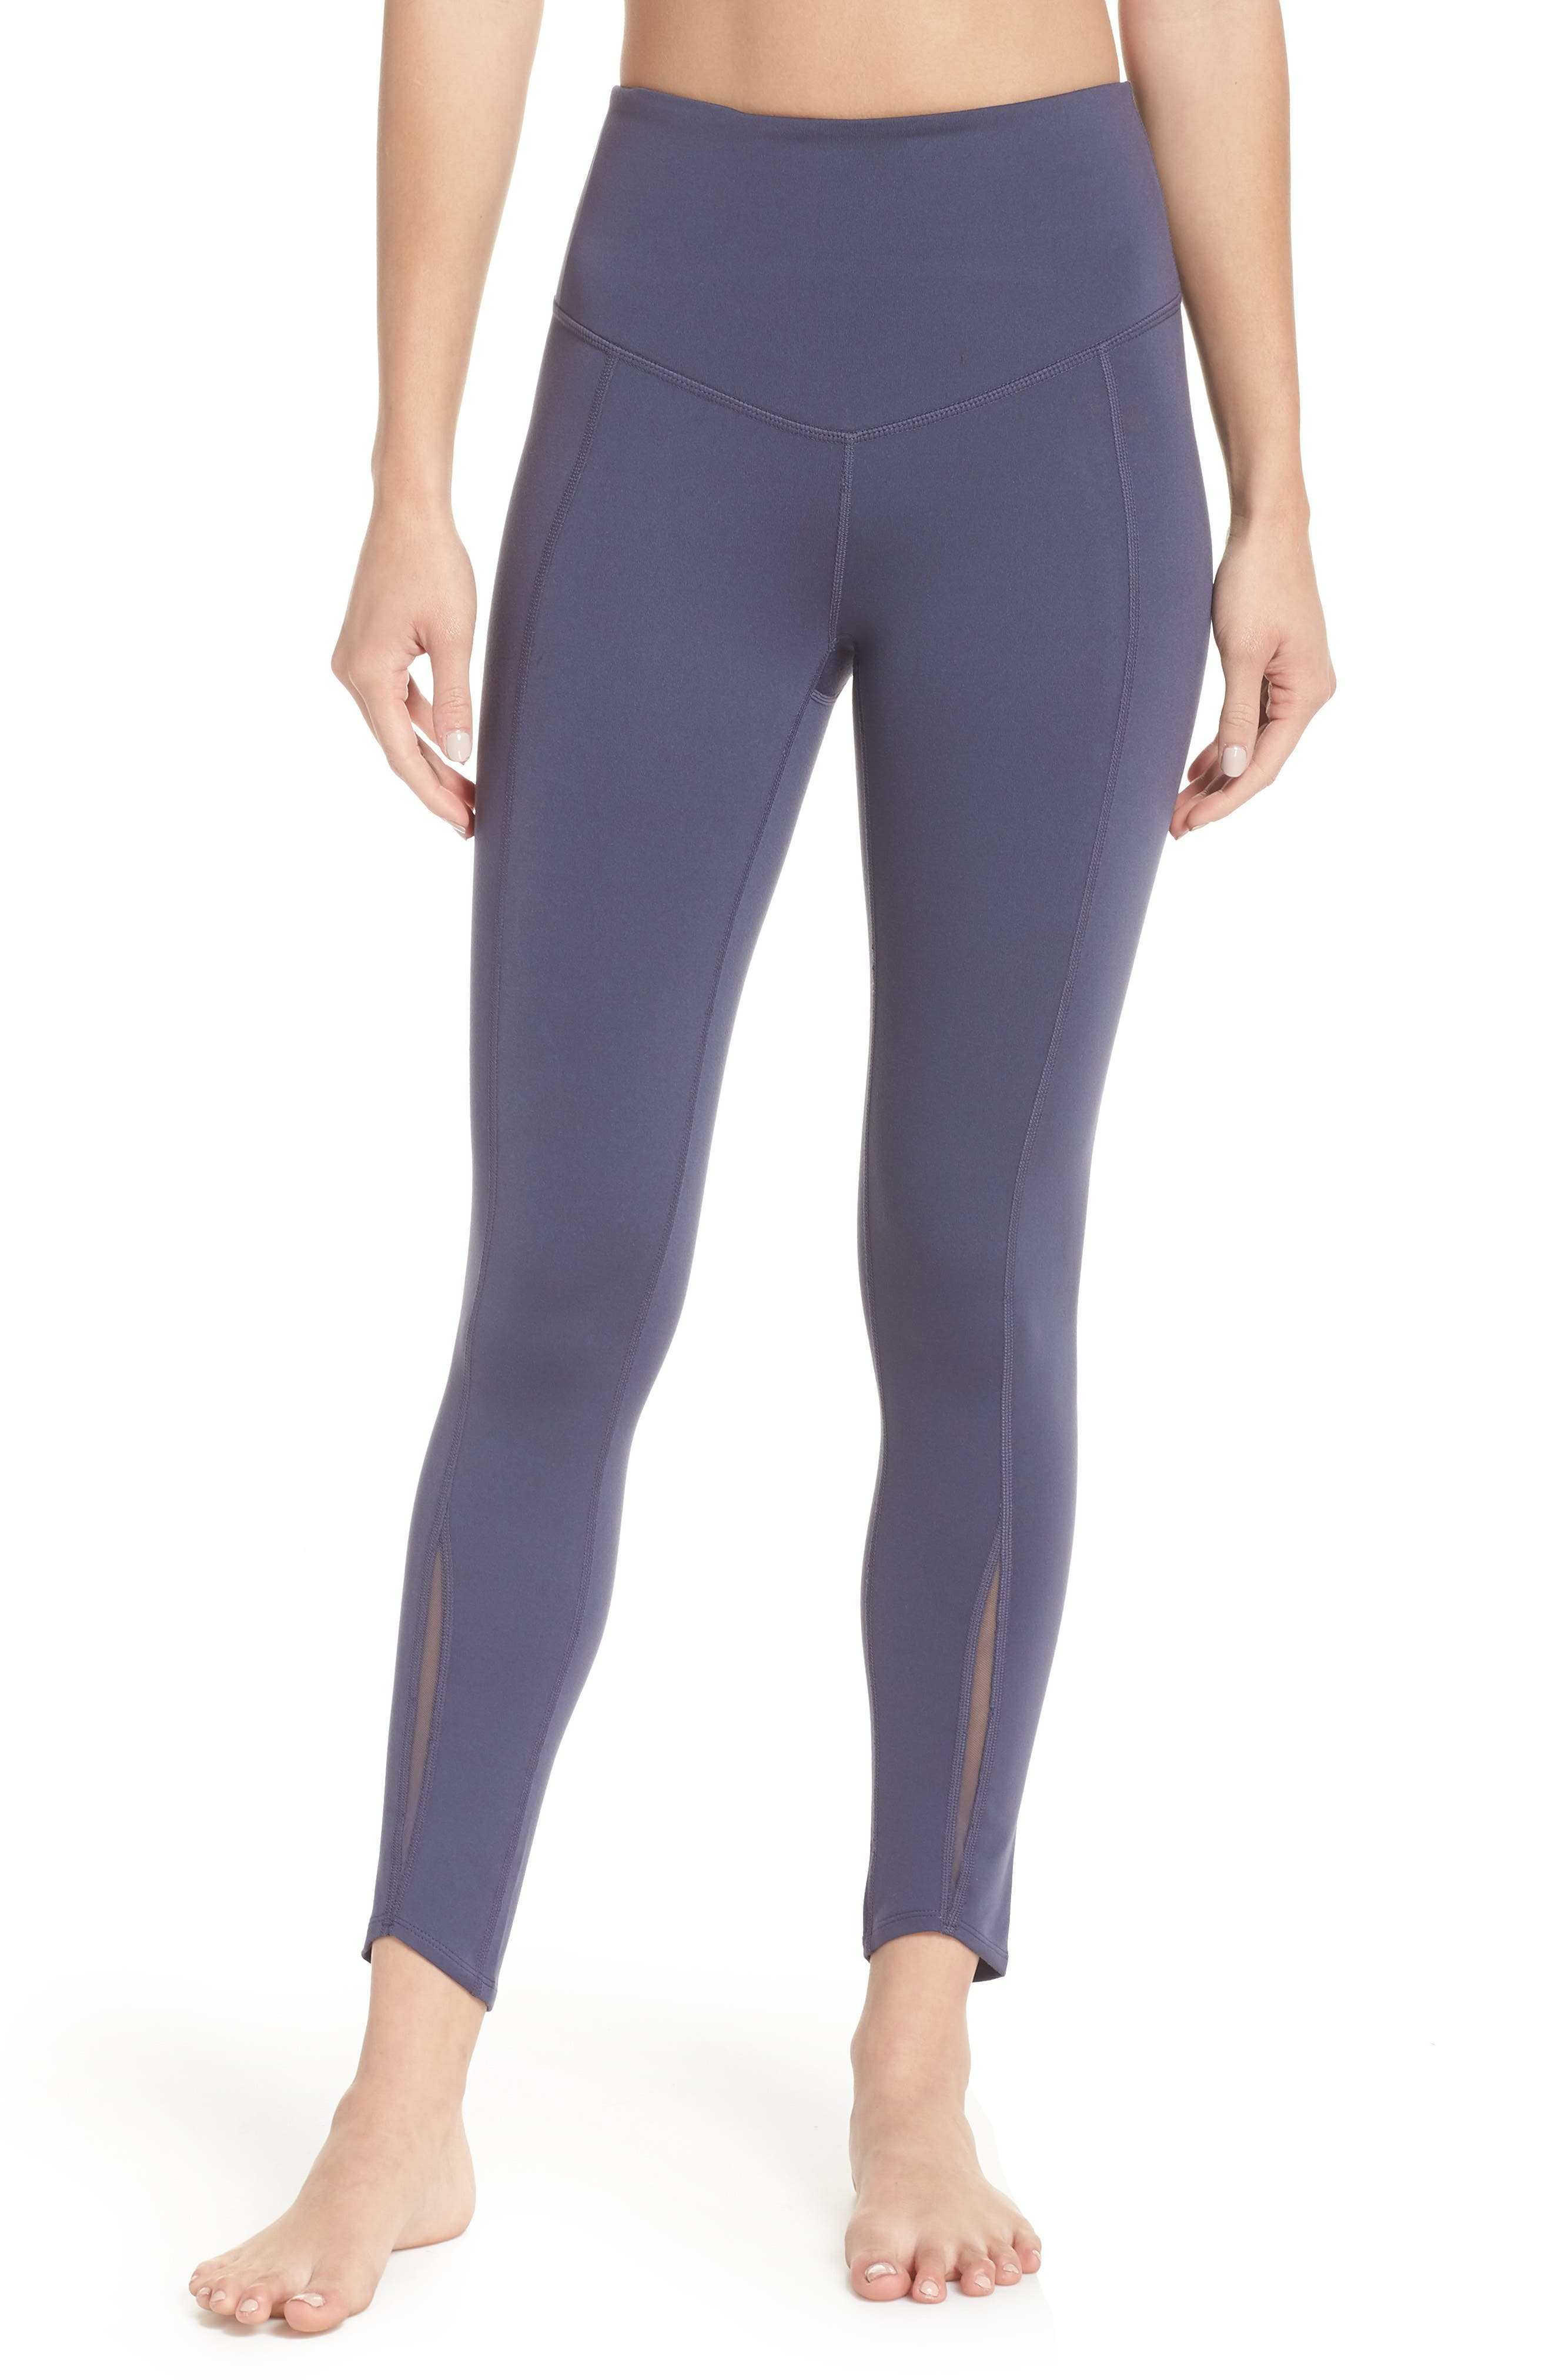 Refocus Recycled High Waist Midi Leggings,                         Main,                         color, 021